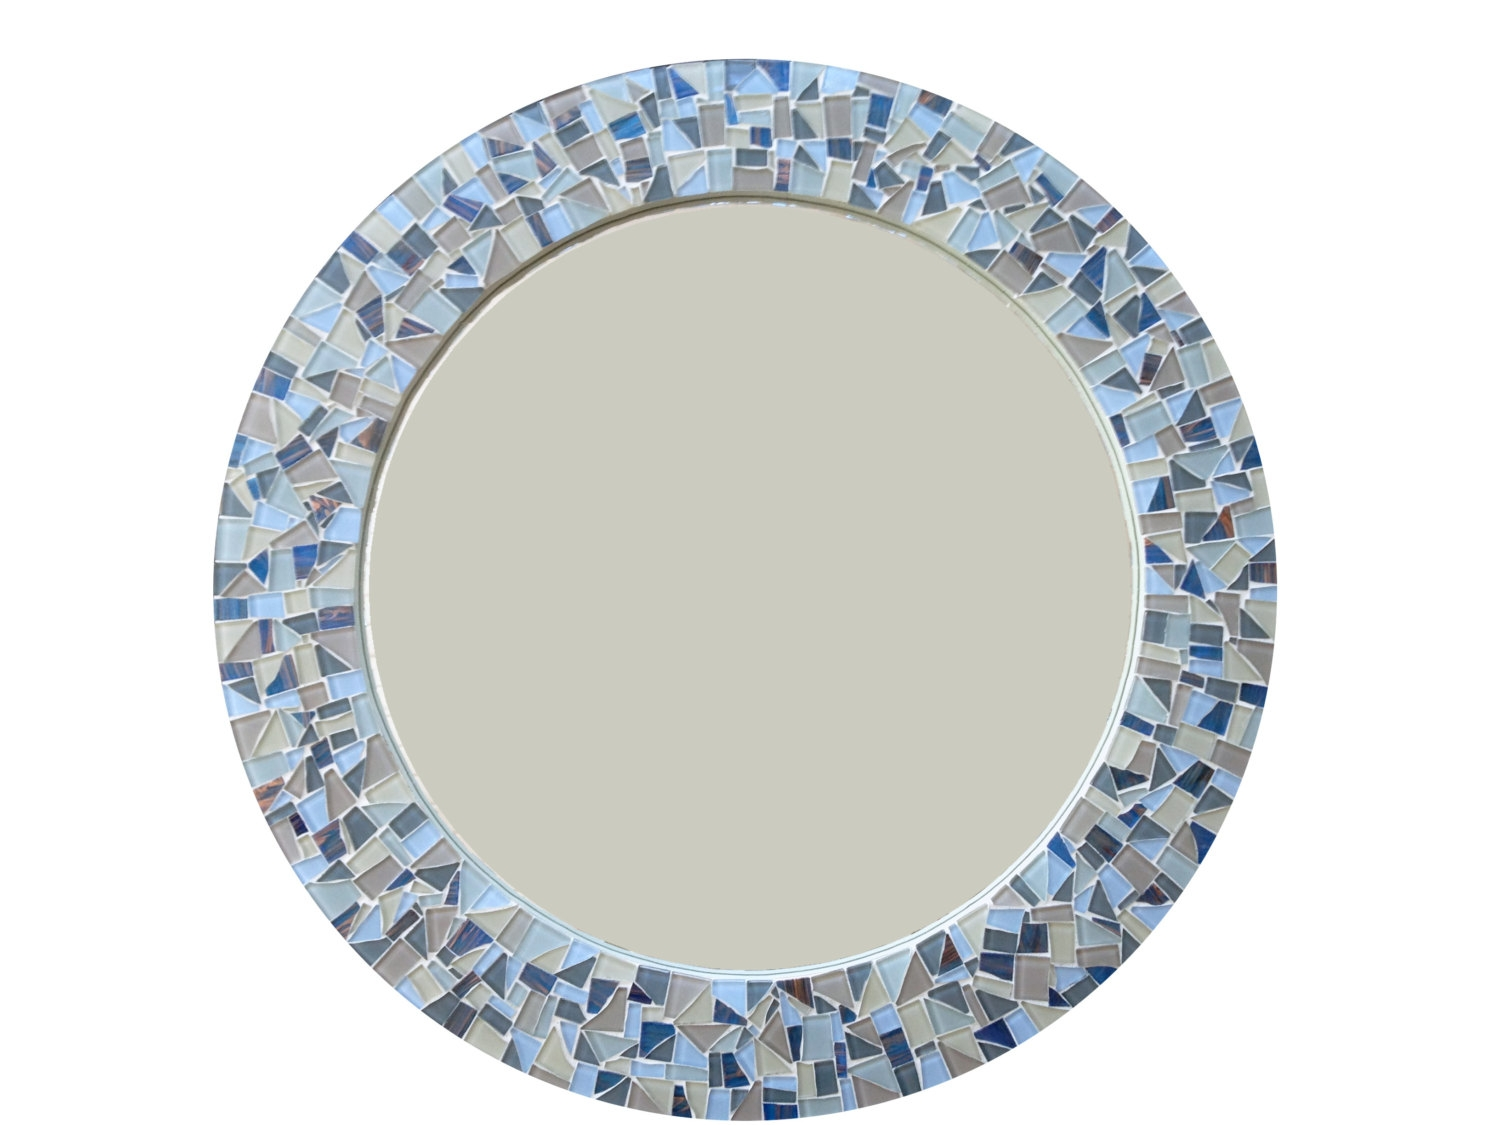 Round Mirror Mosaic Wall Mirror Blue Gray And Tan Cottage Inside Round Mosaic Wall Mirror (Image 12 of 15)